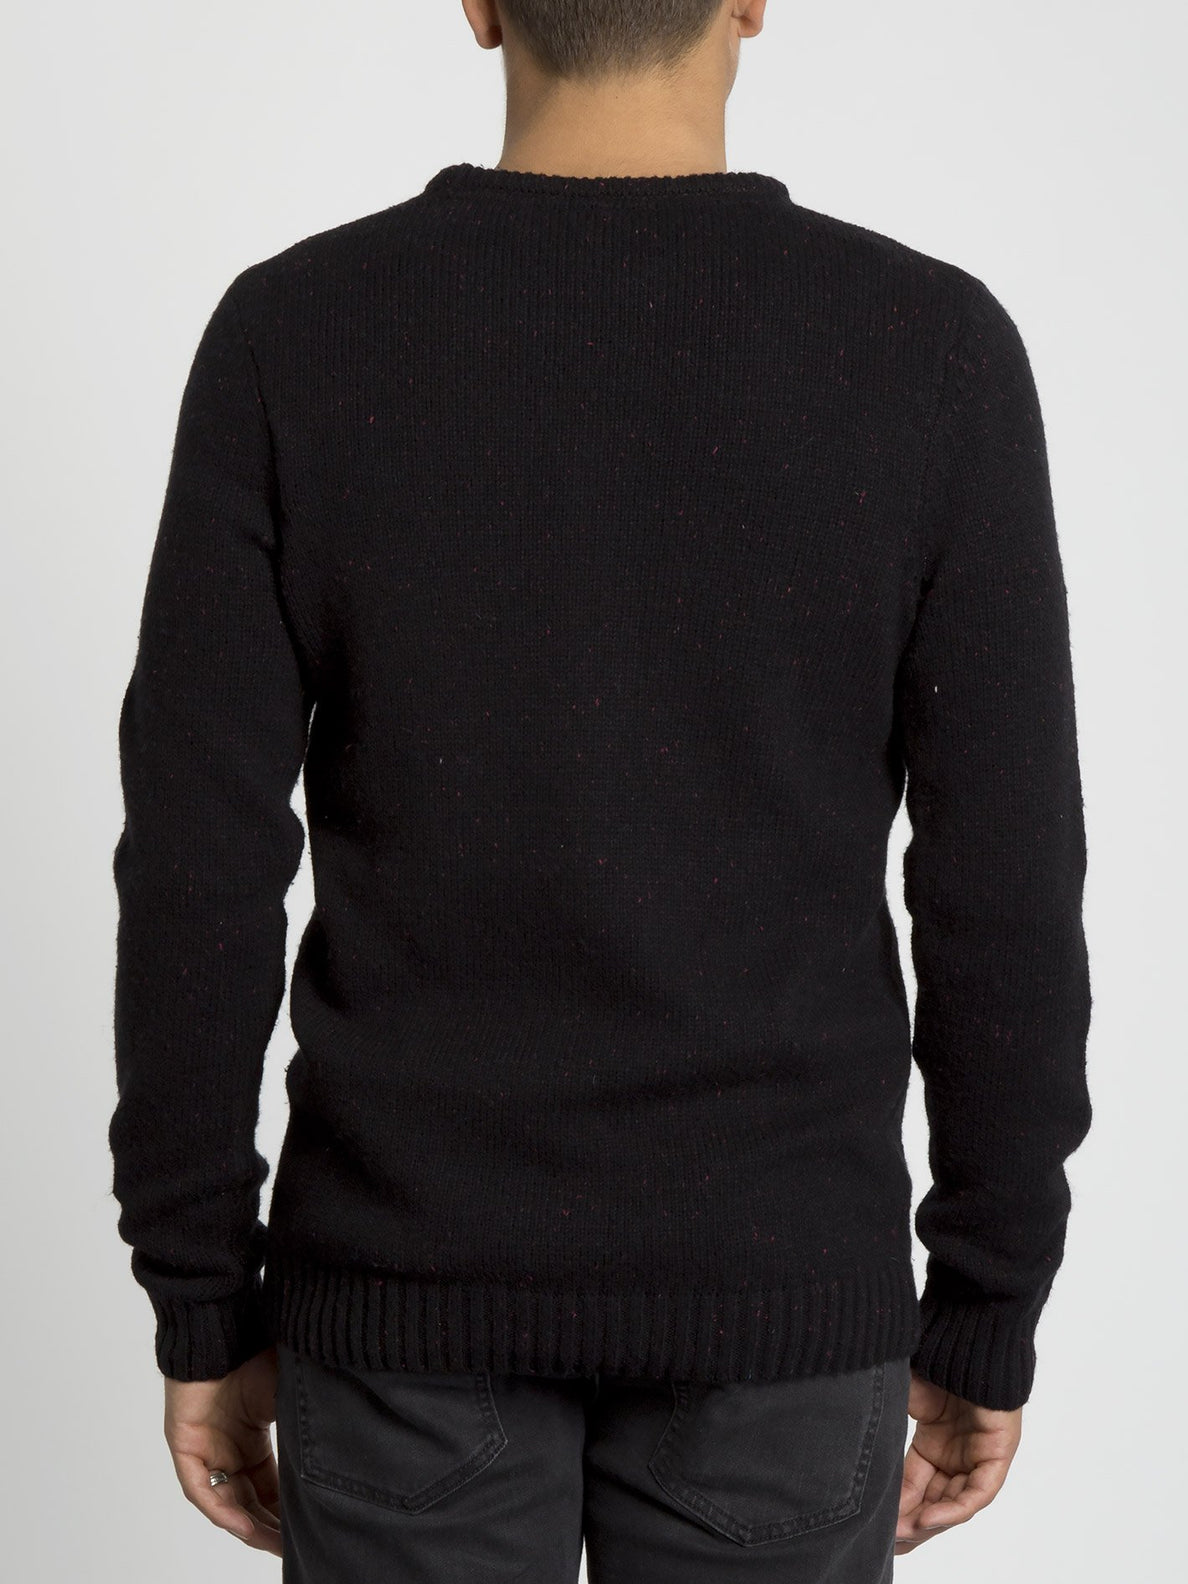 Edmonder Sweater - Black (A0731902_BLK) [B]